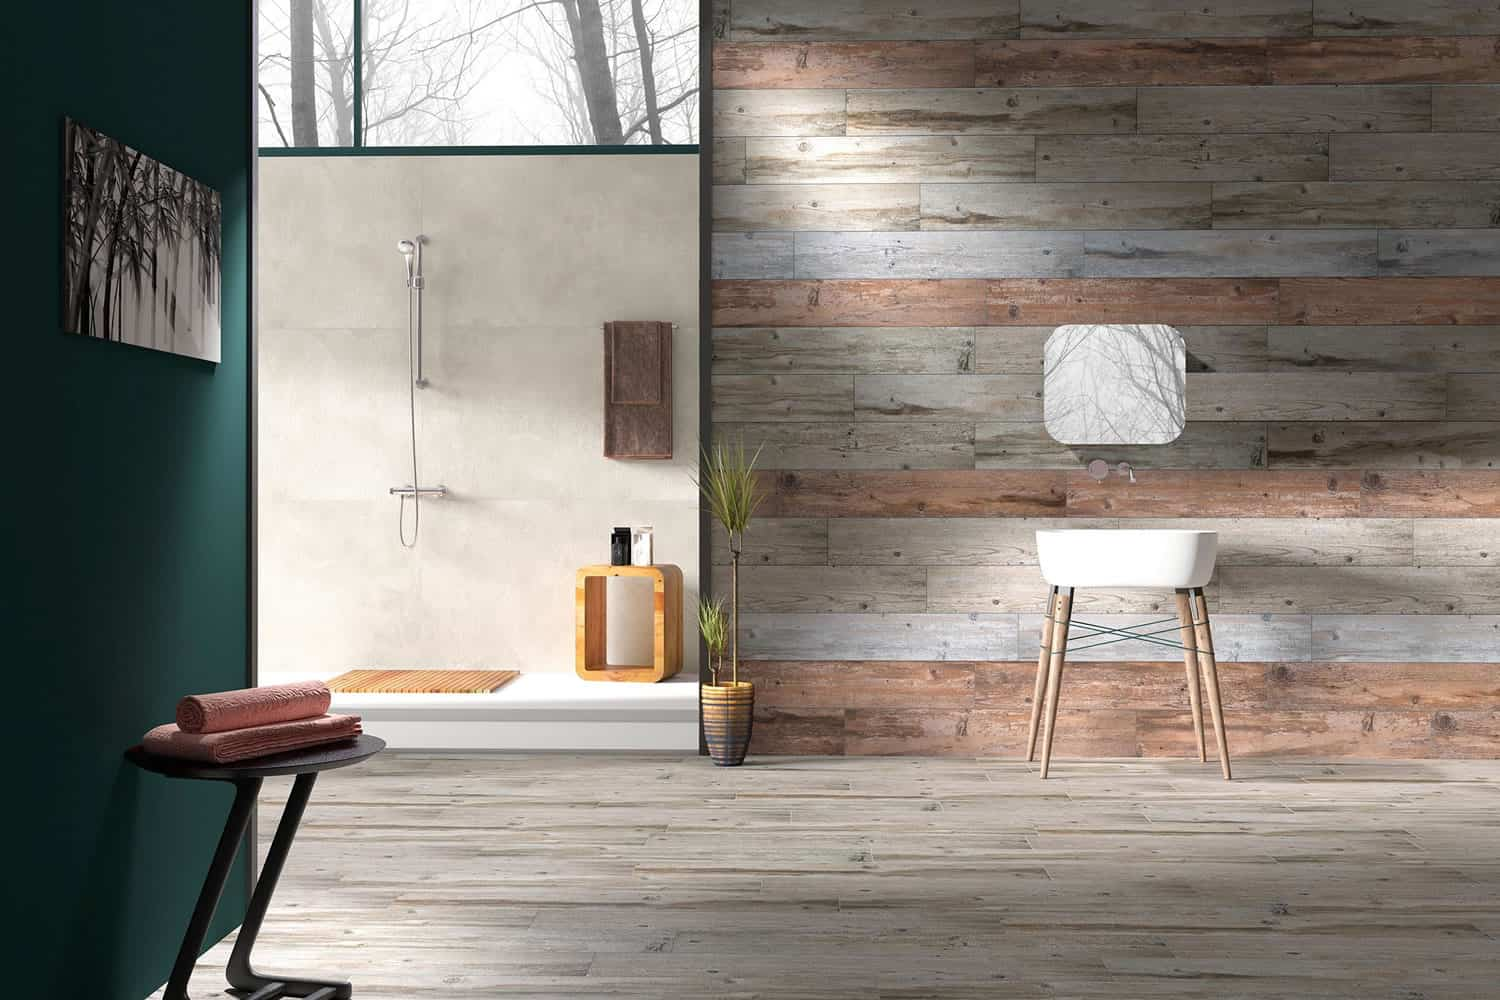 Wood Effect Tiles For Floors And Walls Nicest Porcelain And - Tiles for bathroom walls and floors